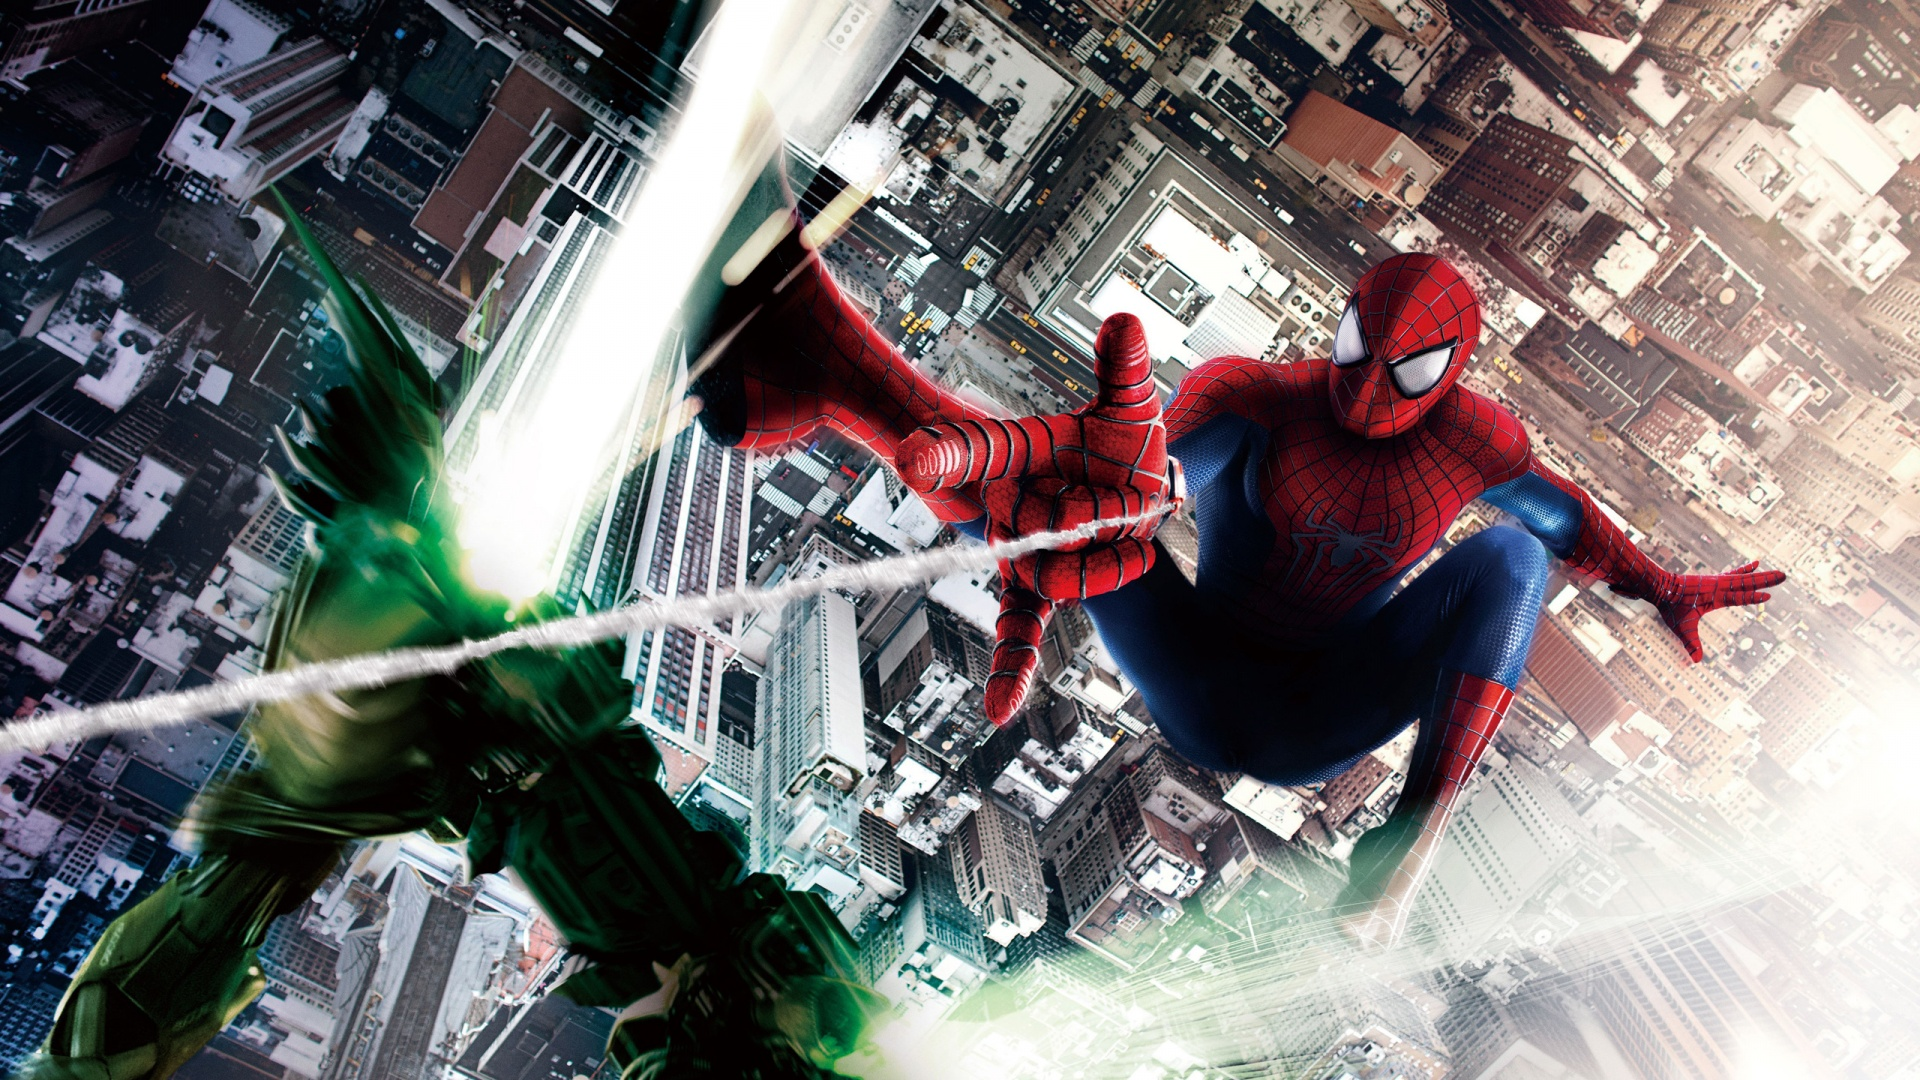 Spiderman Live Wallpaper Hd: Marvel Live-action Movies Images Amazing Siderman 2 HD